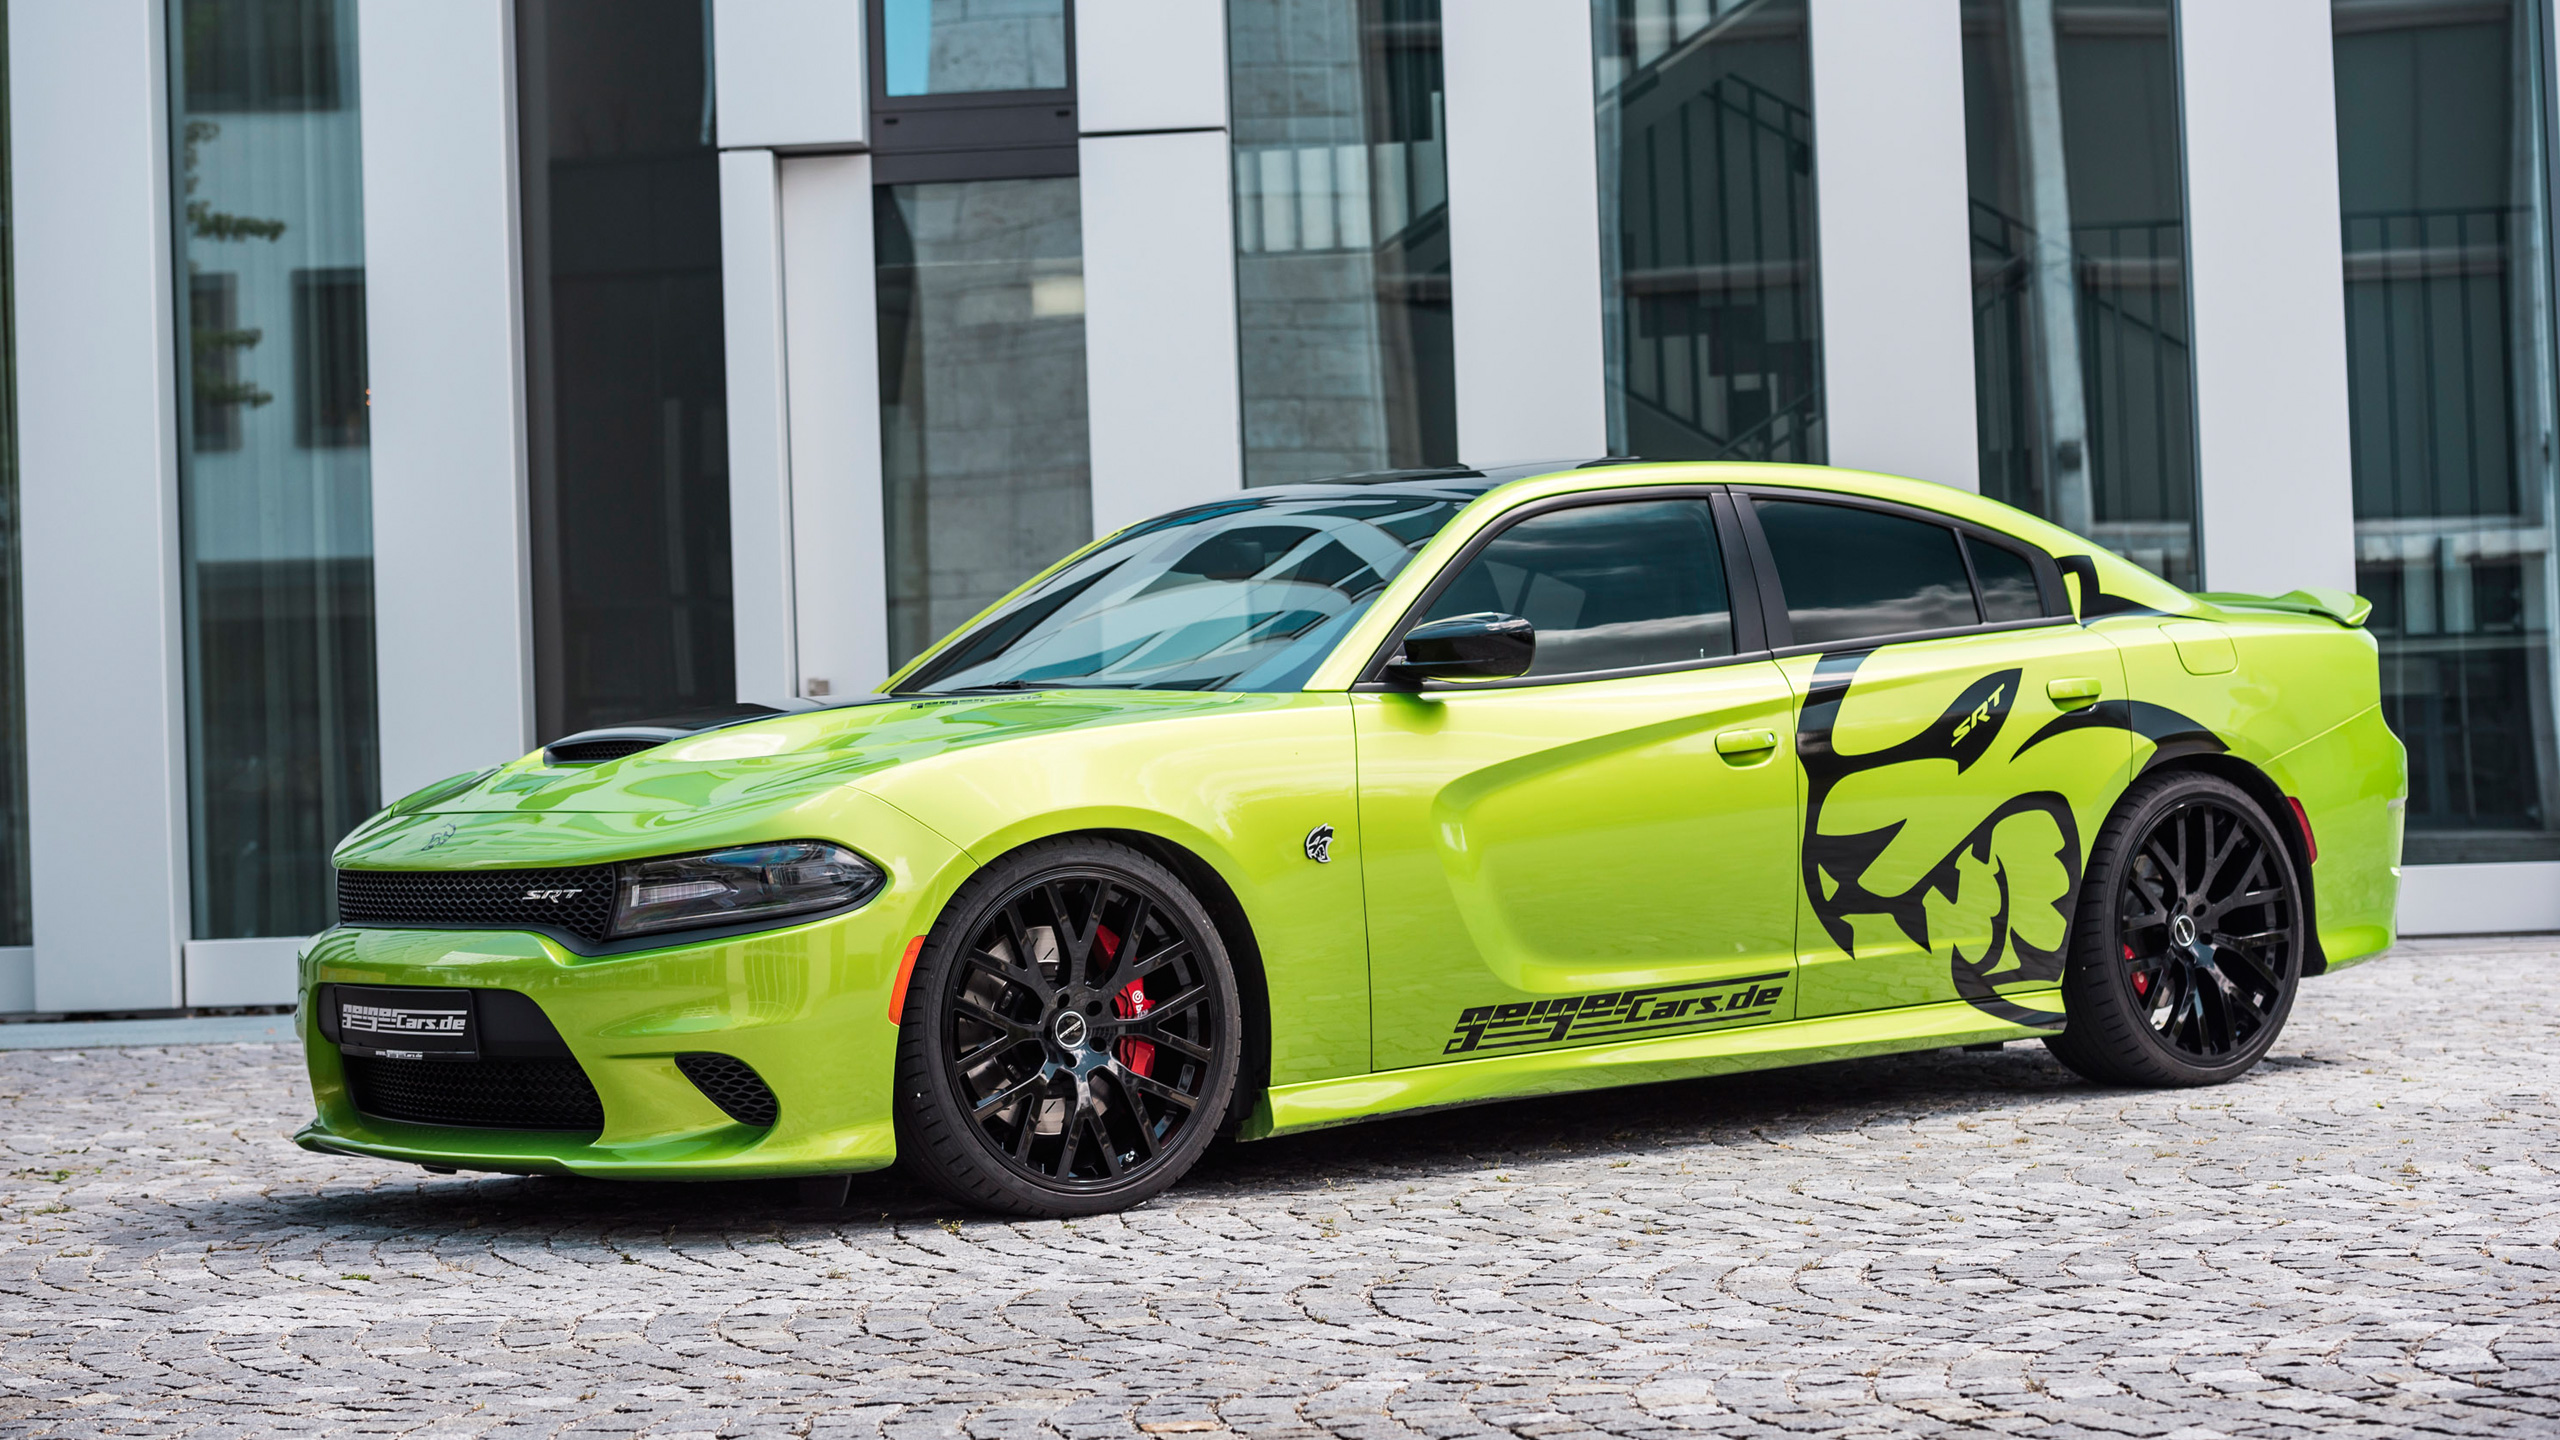 2019 Charger Hellcat >> 2016 Geigercars Dodge Charger SRT Hellcat Wallpaper | HD Car Wallpapers | ID #7010